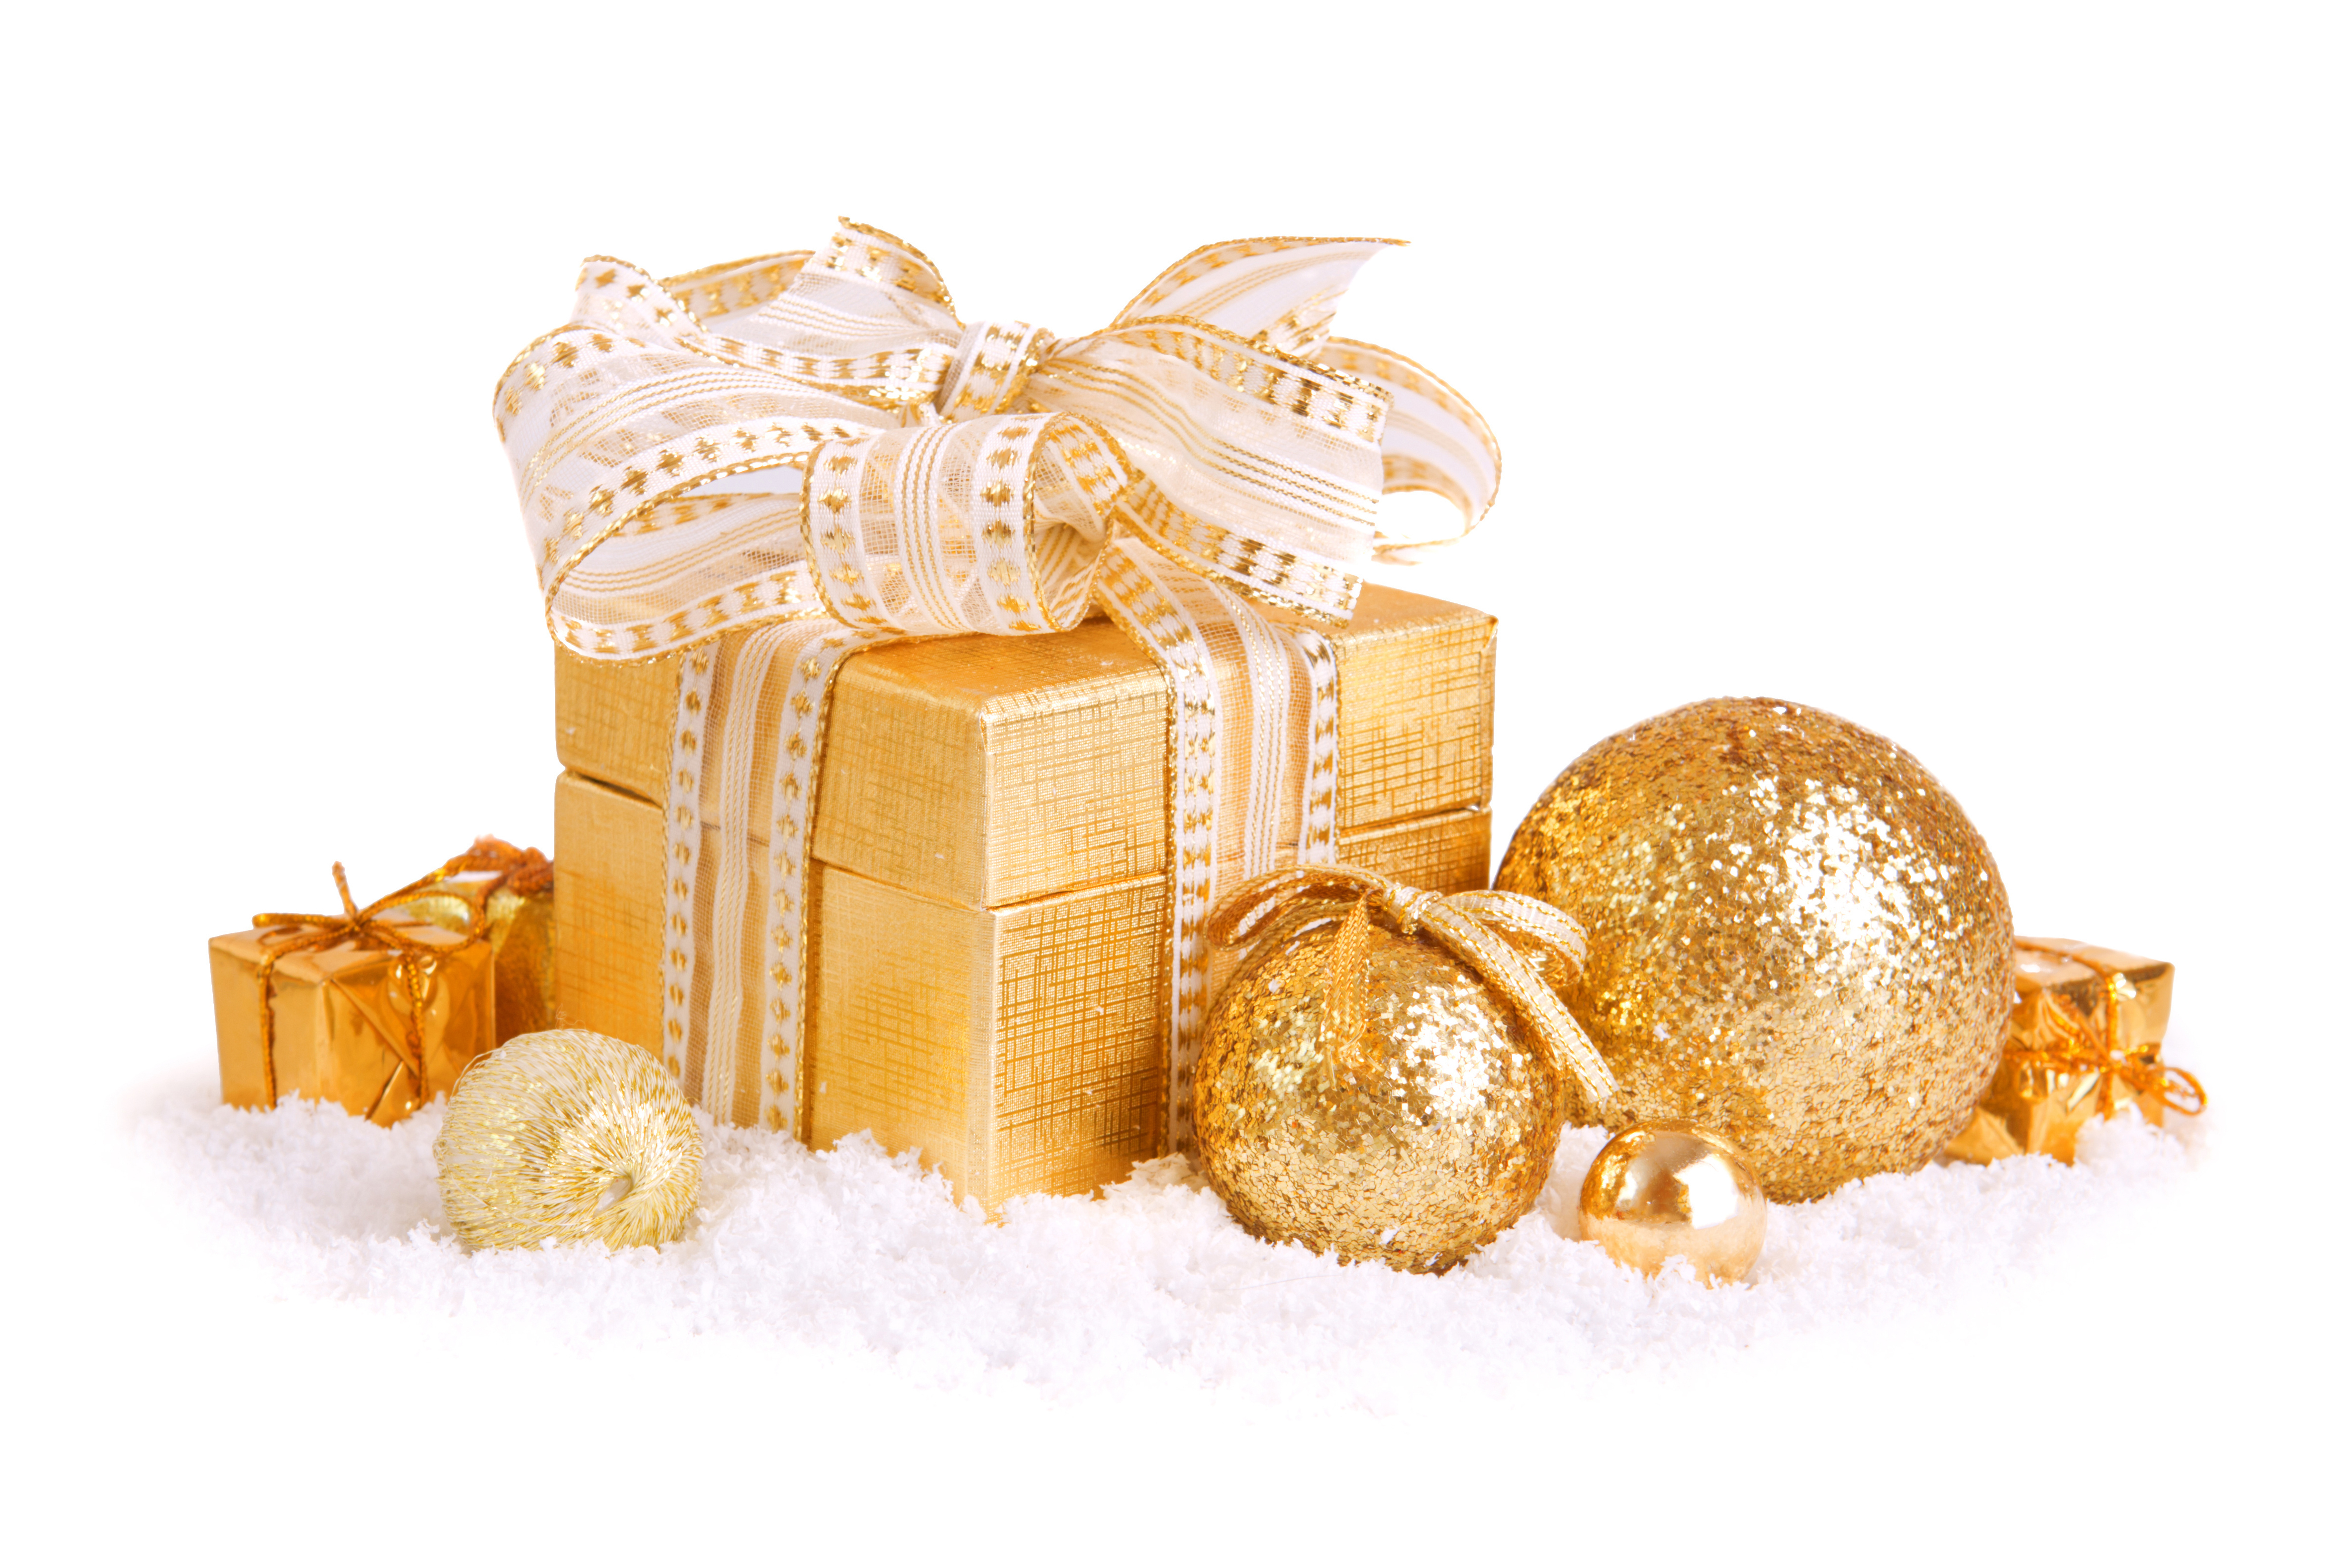 Christmas Box and balls wallpapers and images   wallpapers 4952x3301